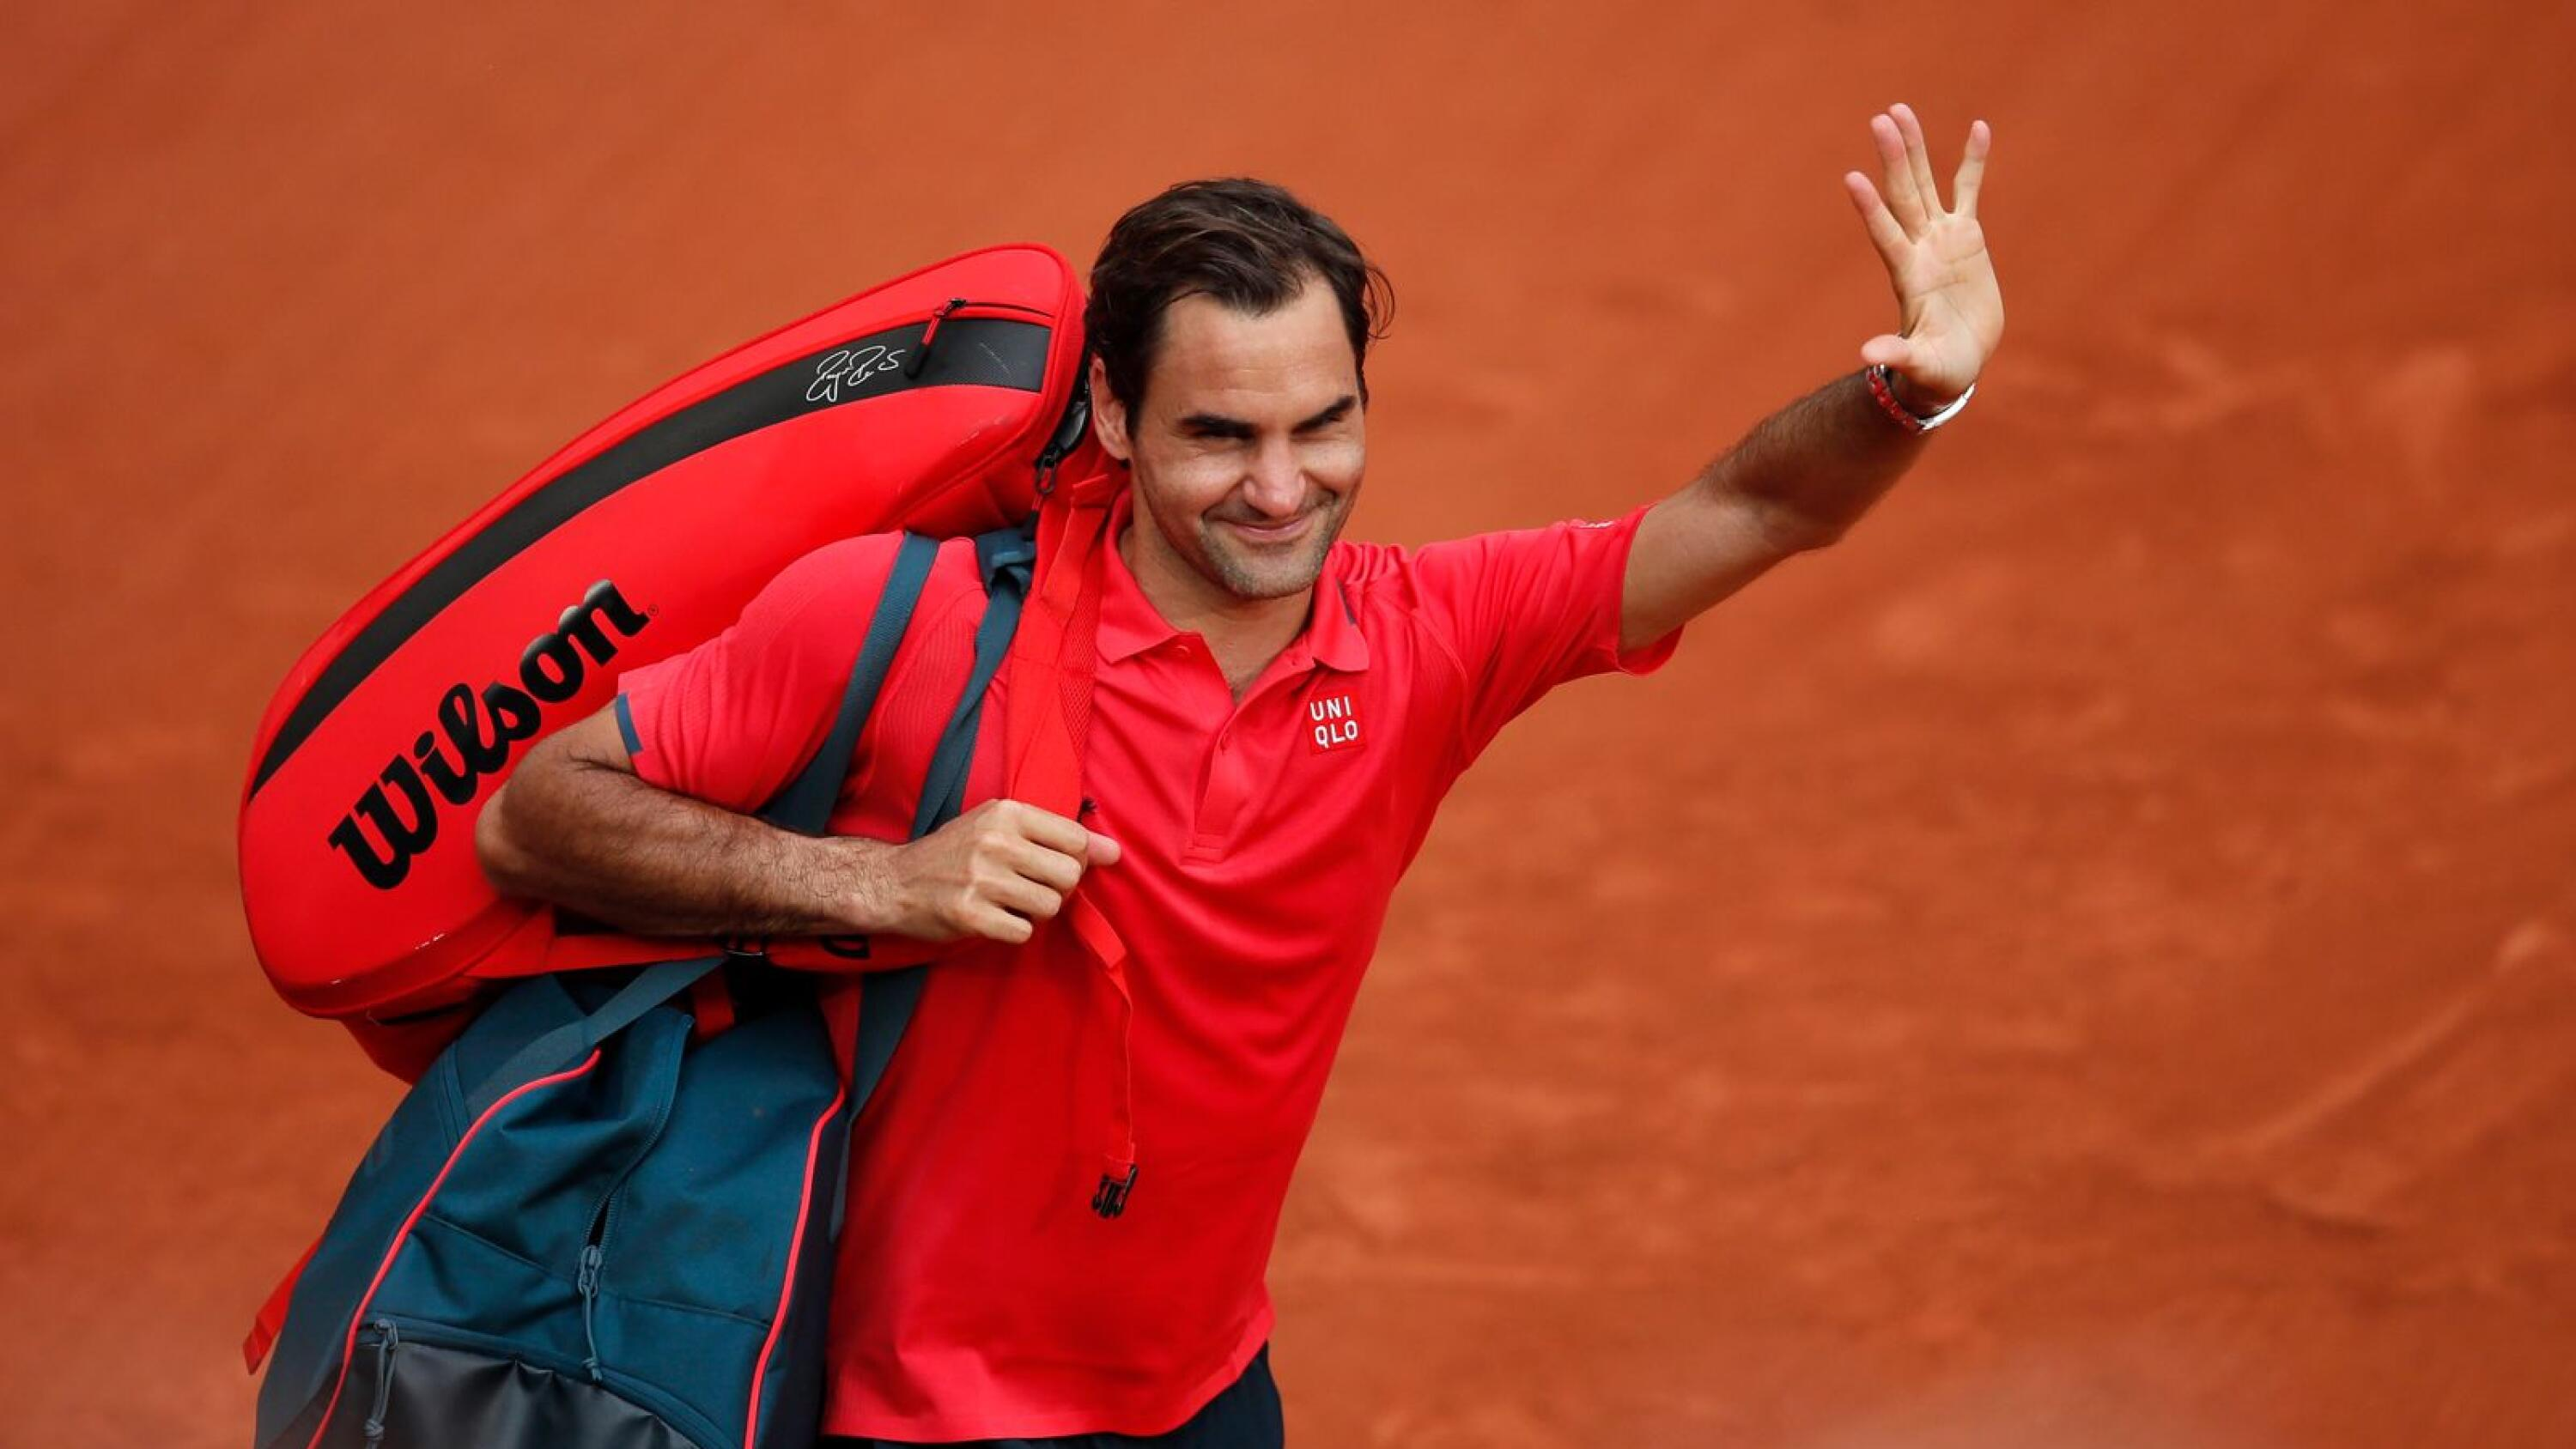 Switzerland's Roger Federer leaves the court after winning his French Open second round match against Croatia's Marin Cilic